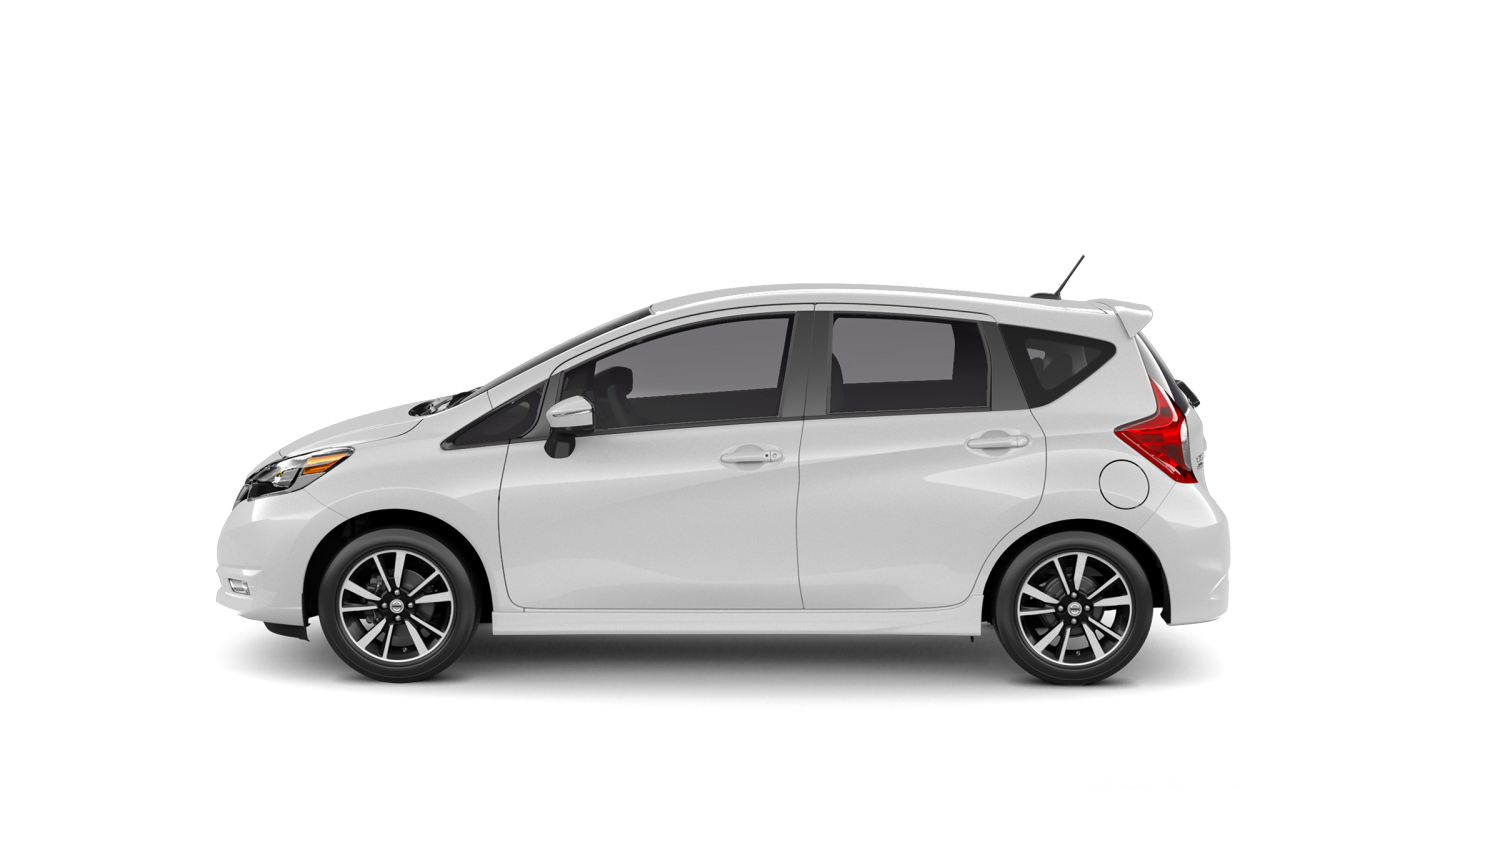 2018 Versa Note Hatchback | Subcompact Car | Nissan USA